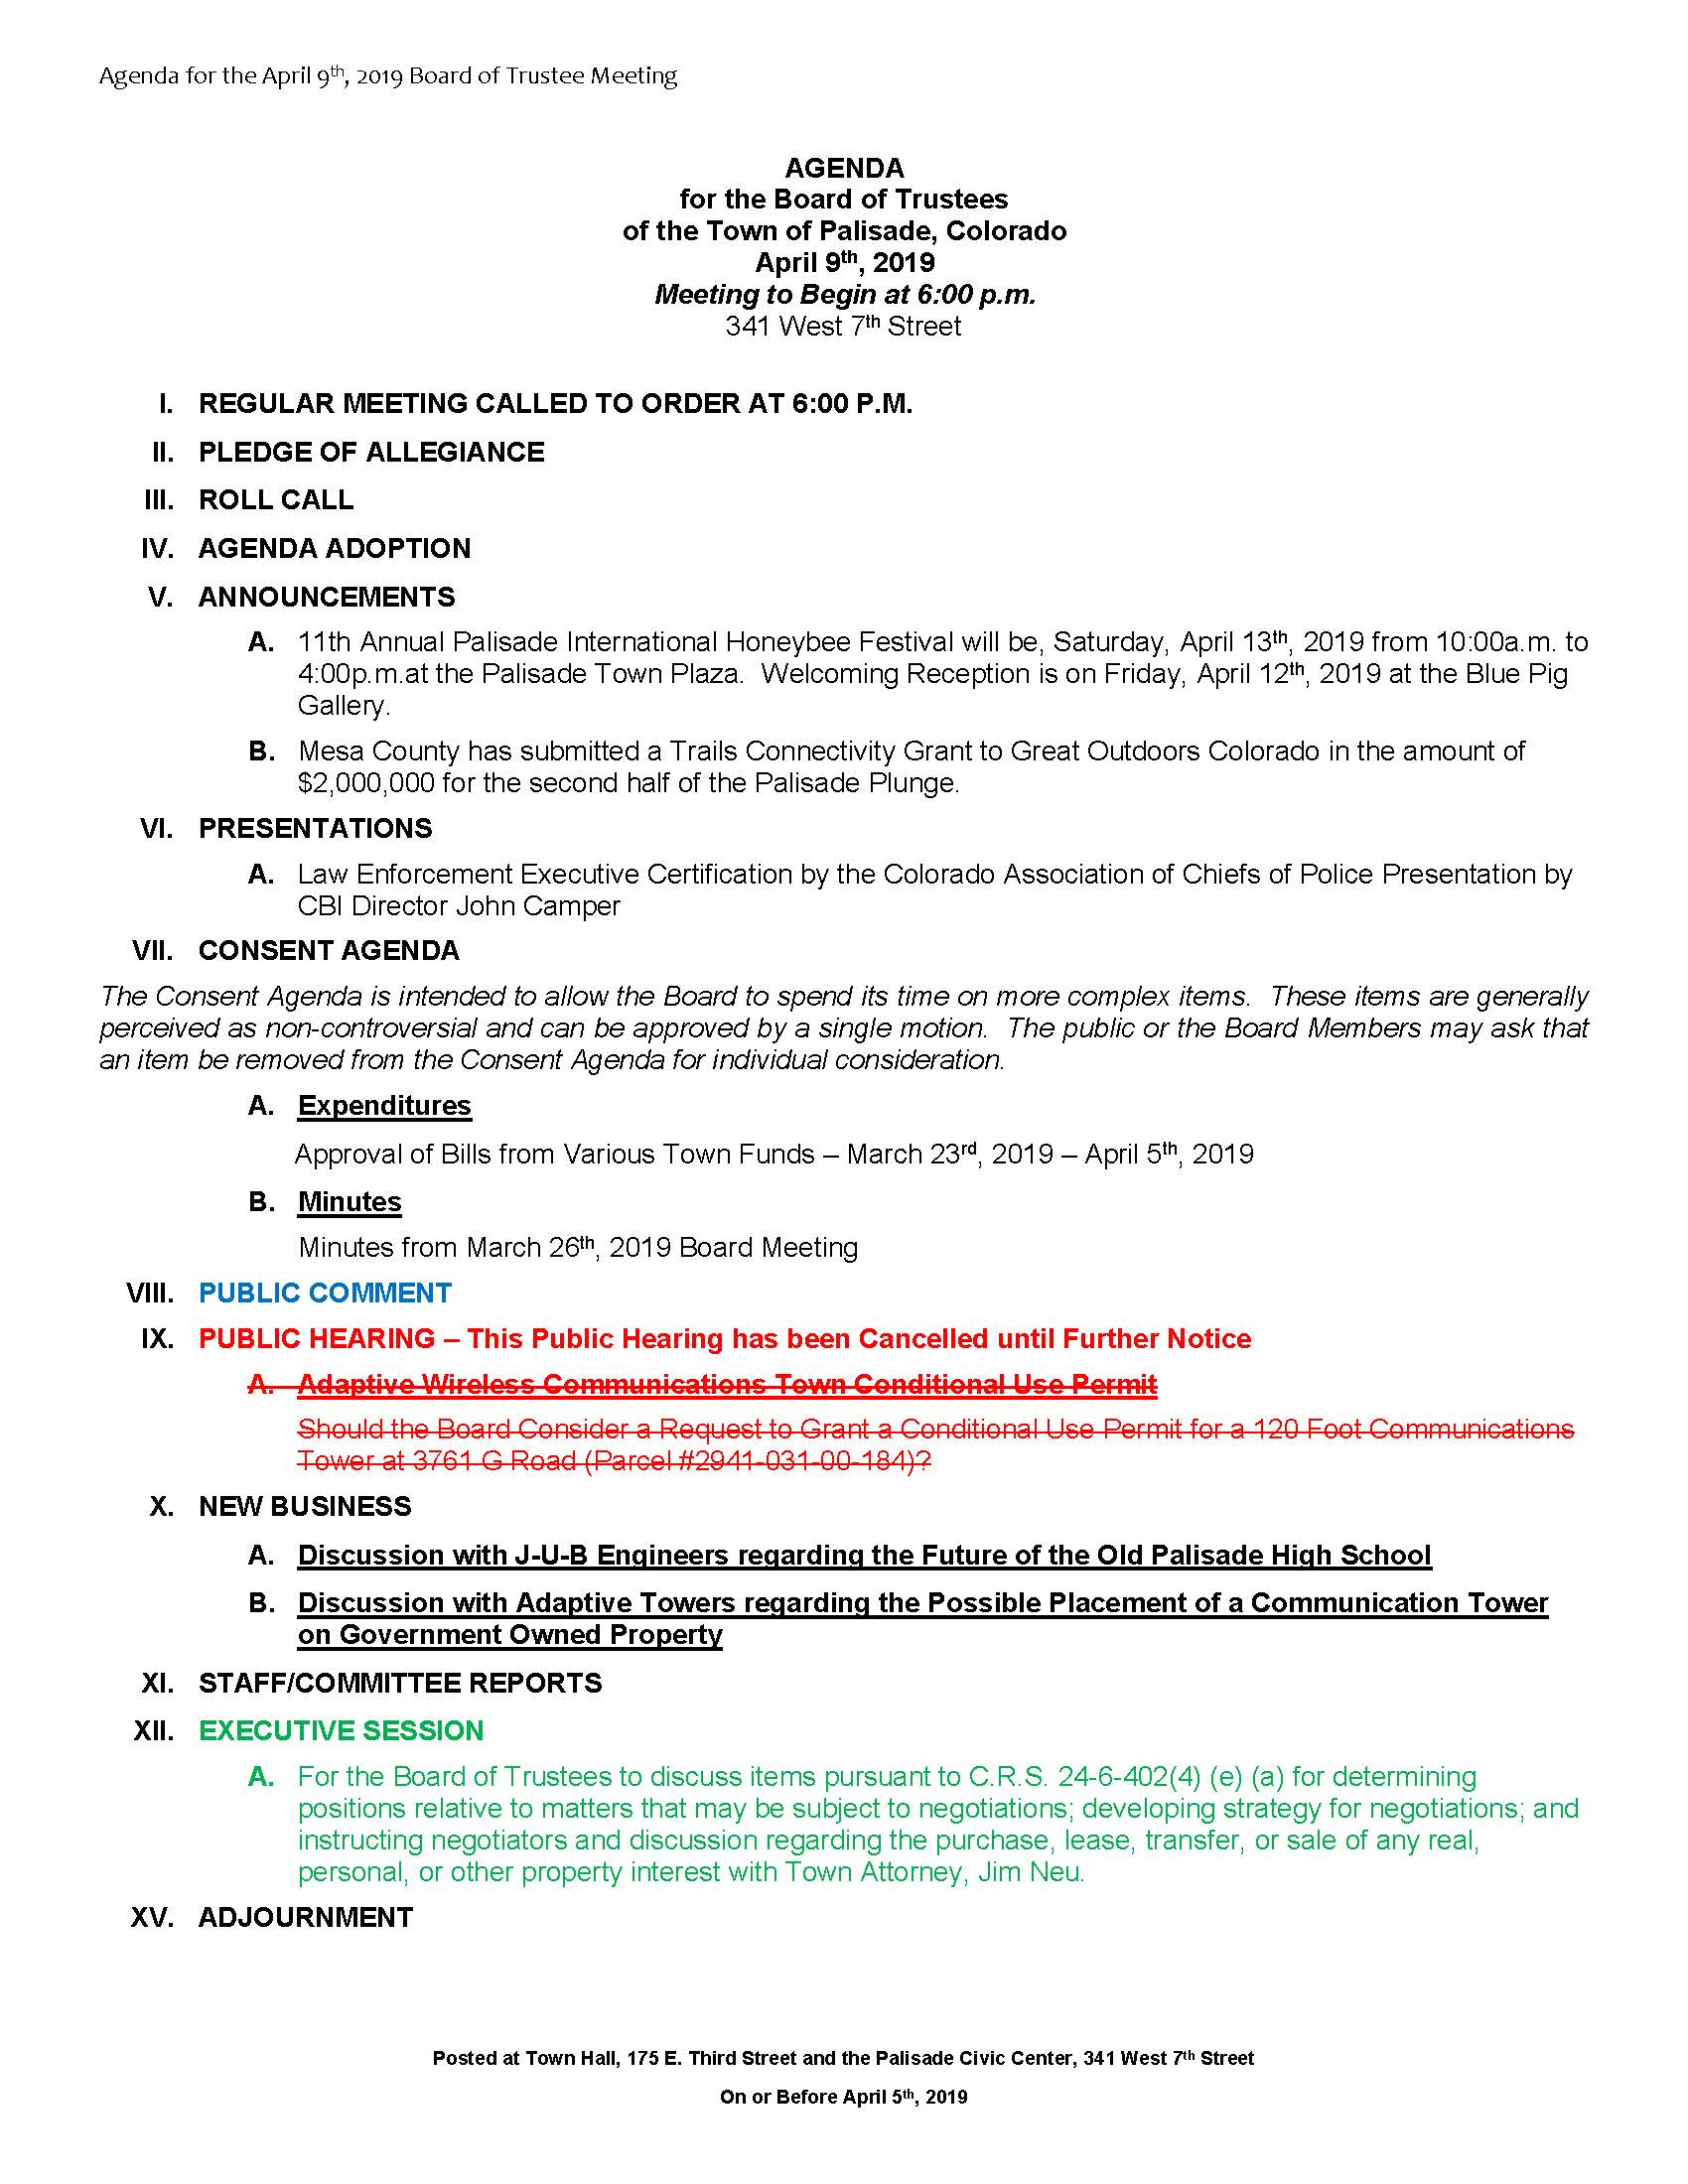 April 9th 2019 Board Meeting Agenda